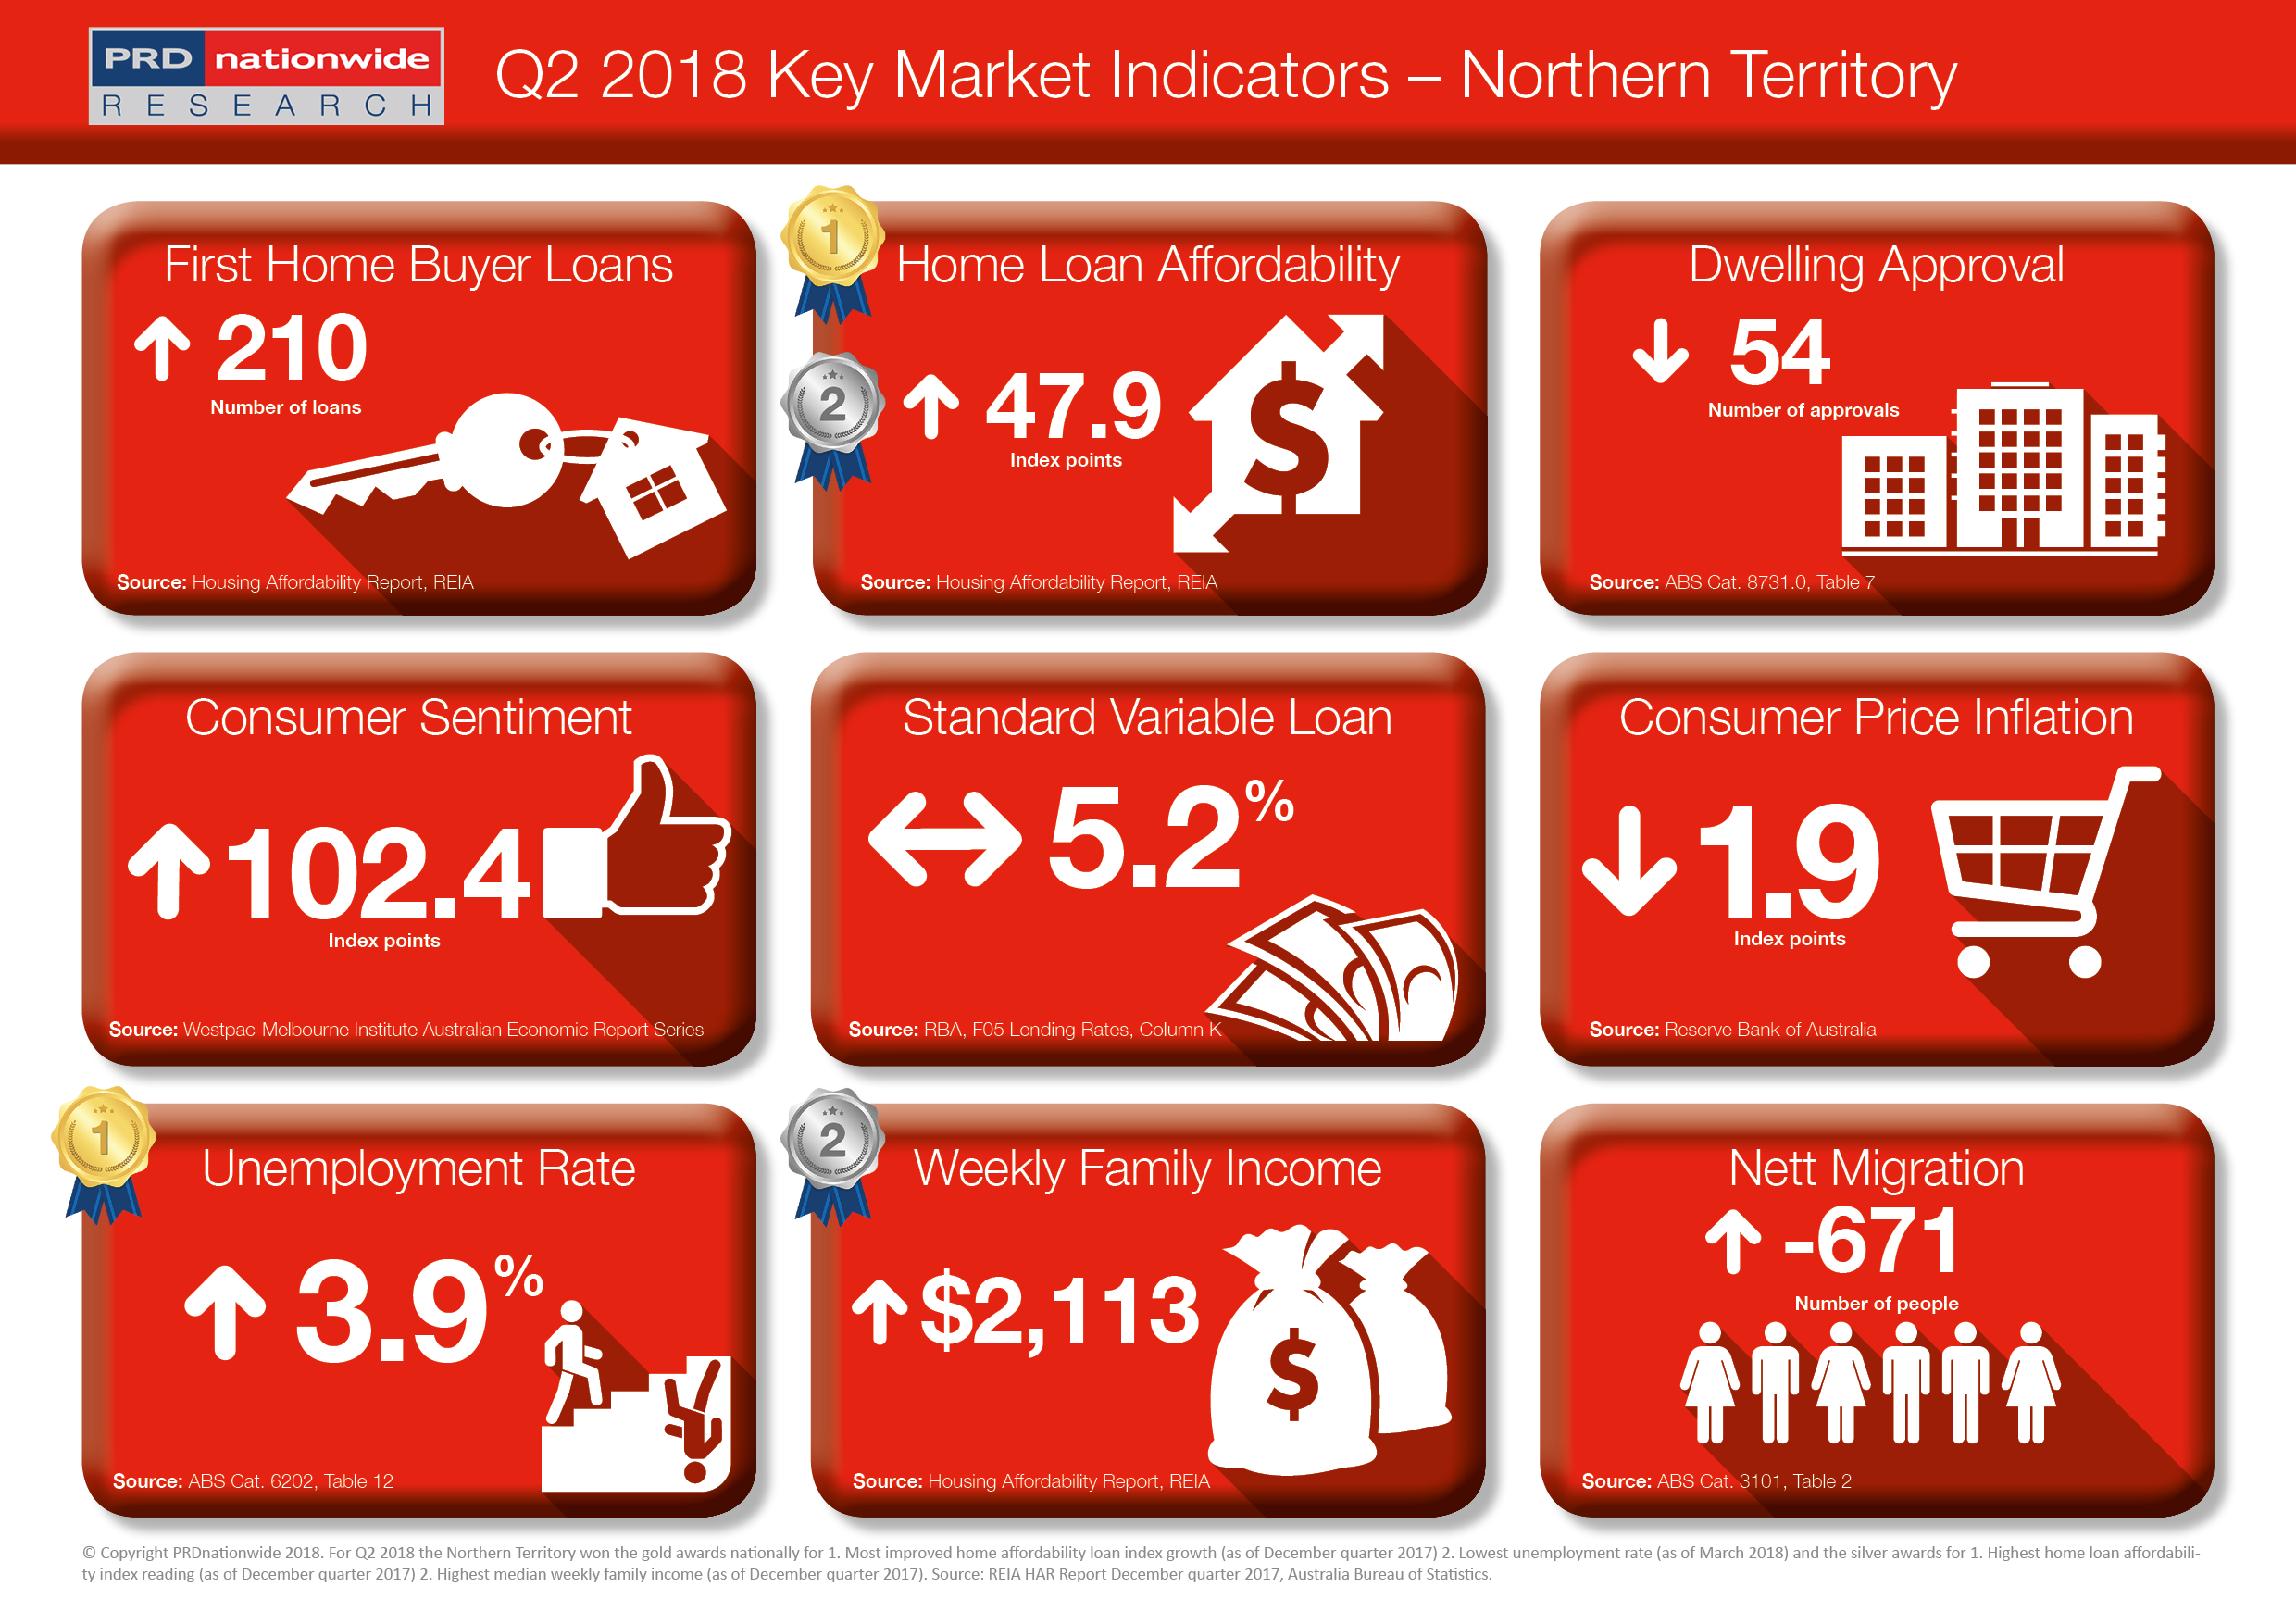 PRDnationwide Q2 Key Market Indicators 2018 - NSW.png